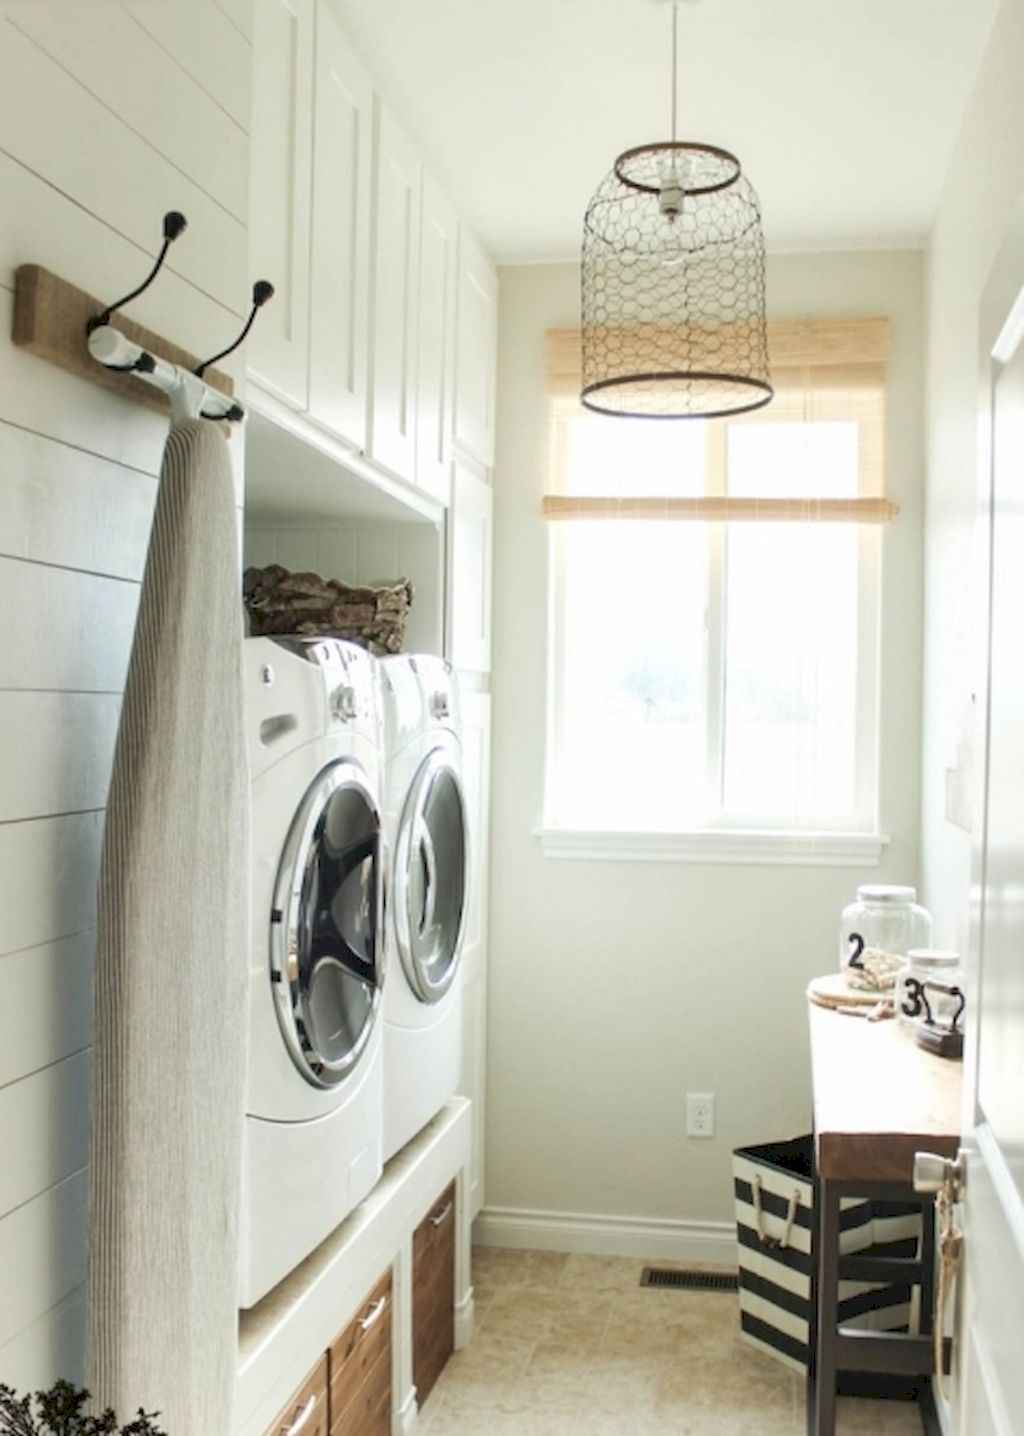 45 Rustic Farmhouse Laundry Room Design Ideas and Makeover (9)